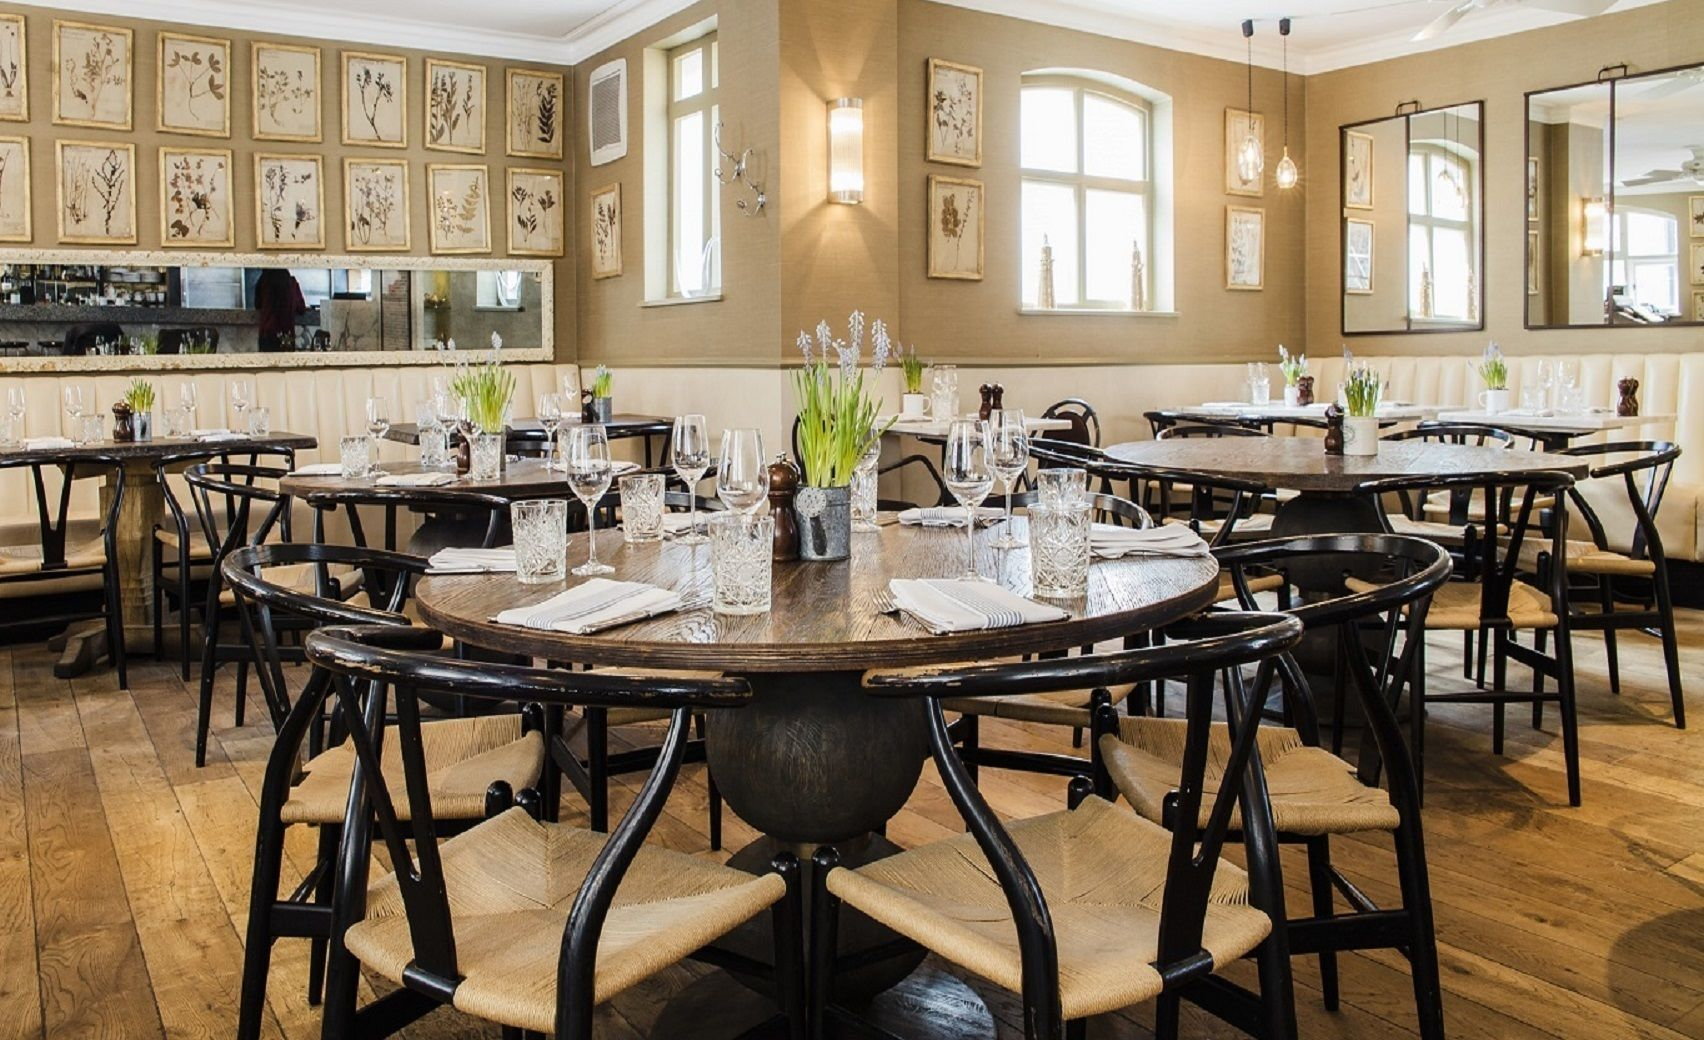 Mews First Floor Brasserie, Mews of Mayfair